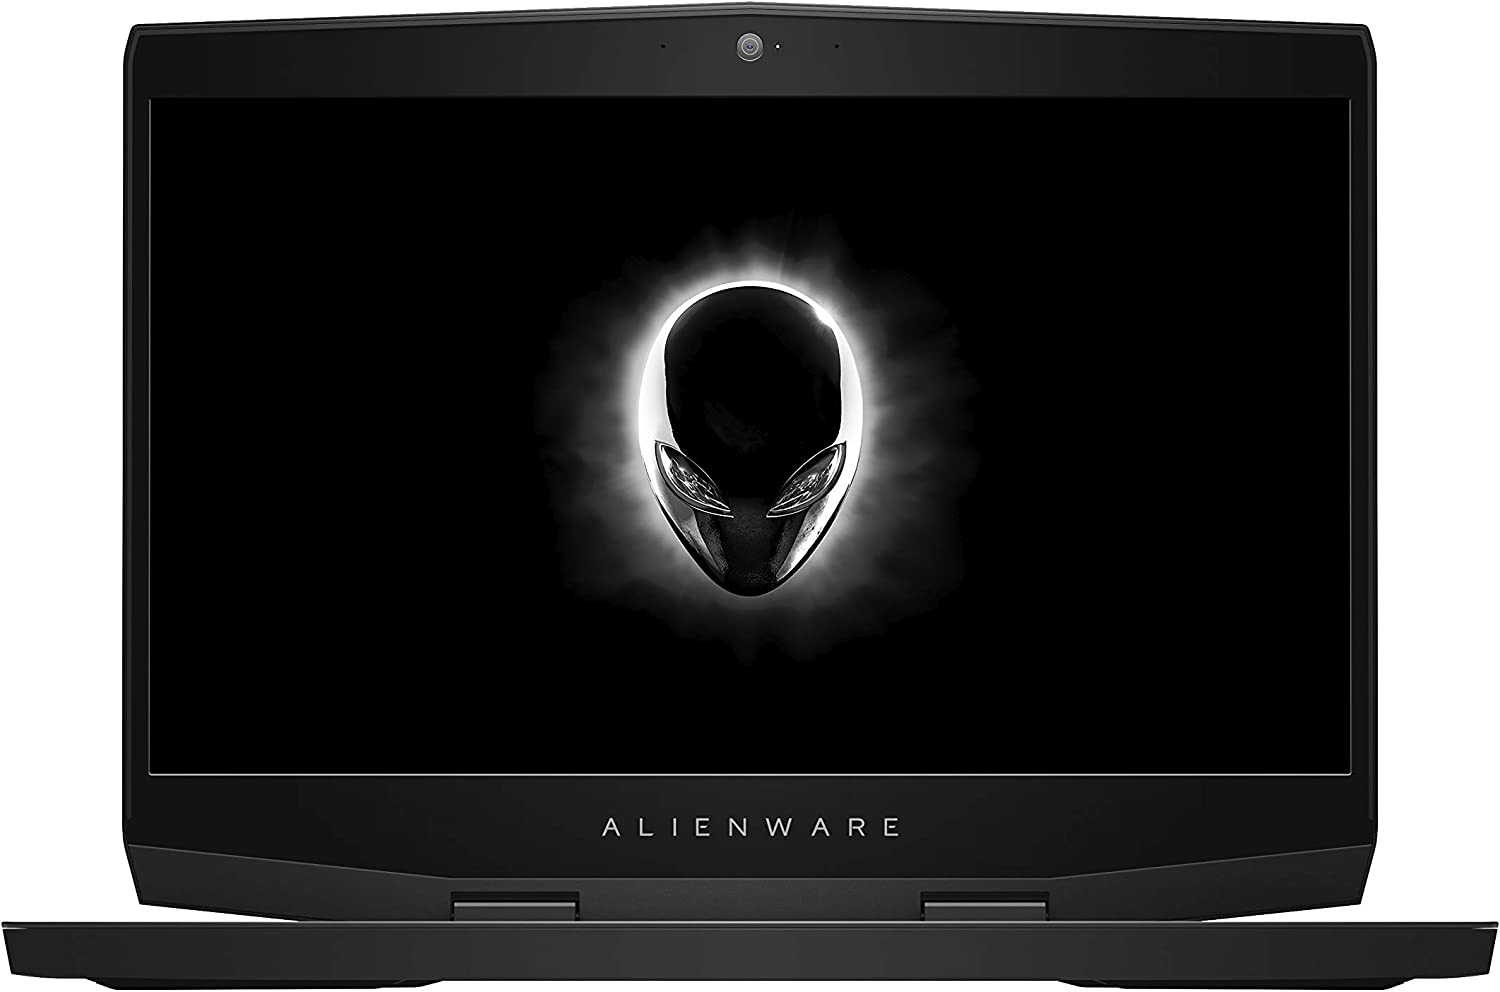 "Alienware M15-15.6"" FHD Gaming Laptop Thin and Light, i7-8750H Processor, NVIDIA GeForce Graphics Card, 16GB RAM, 1TB Hybrid HDD + 128GB SSD, 17.9mm Thick & 4.78lbs"